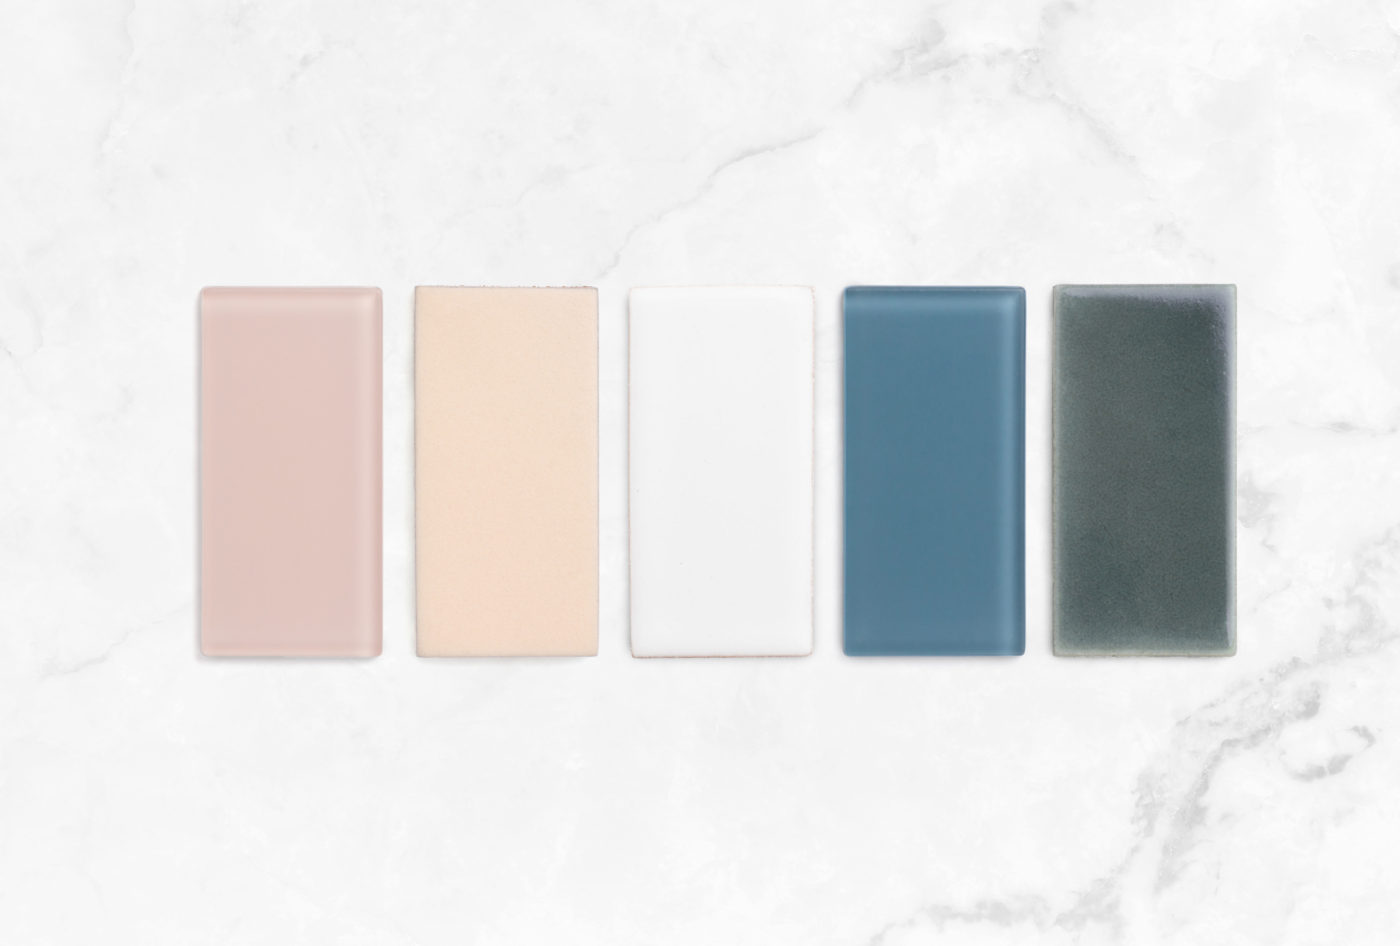 2020 Q4 Jaclyn Johnson Rosy Finch Matte Tumbleweed White Wash Blue Jay Matte Tempest